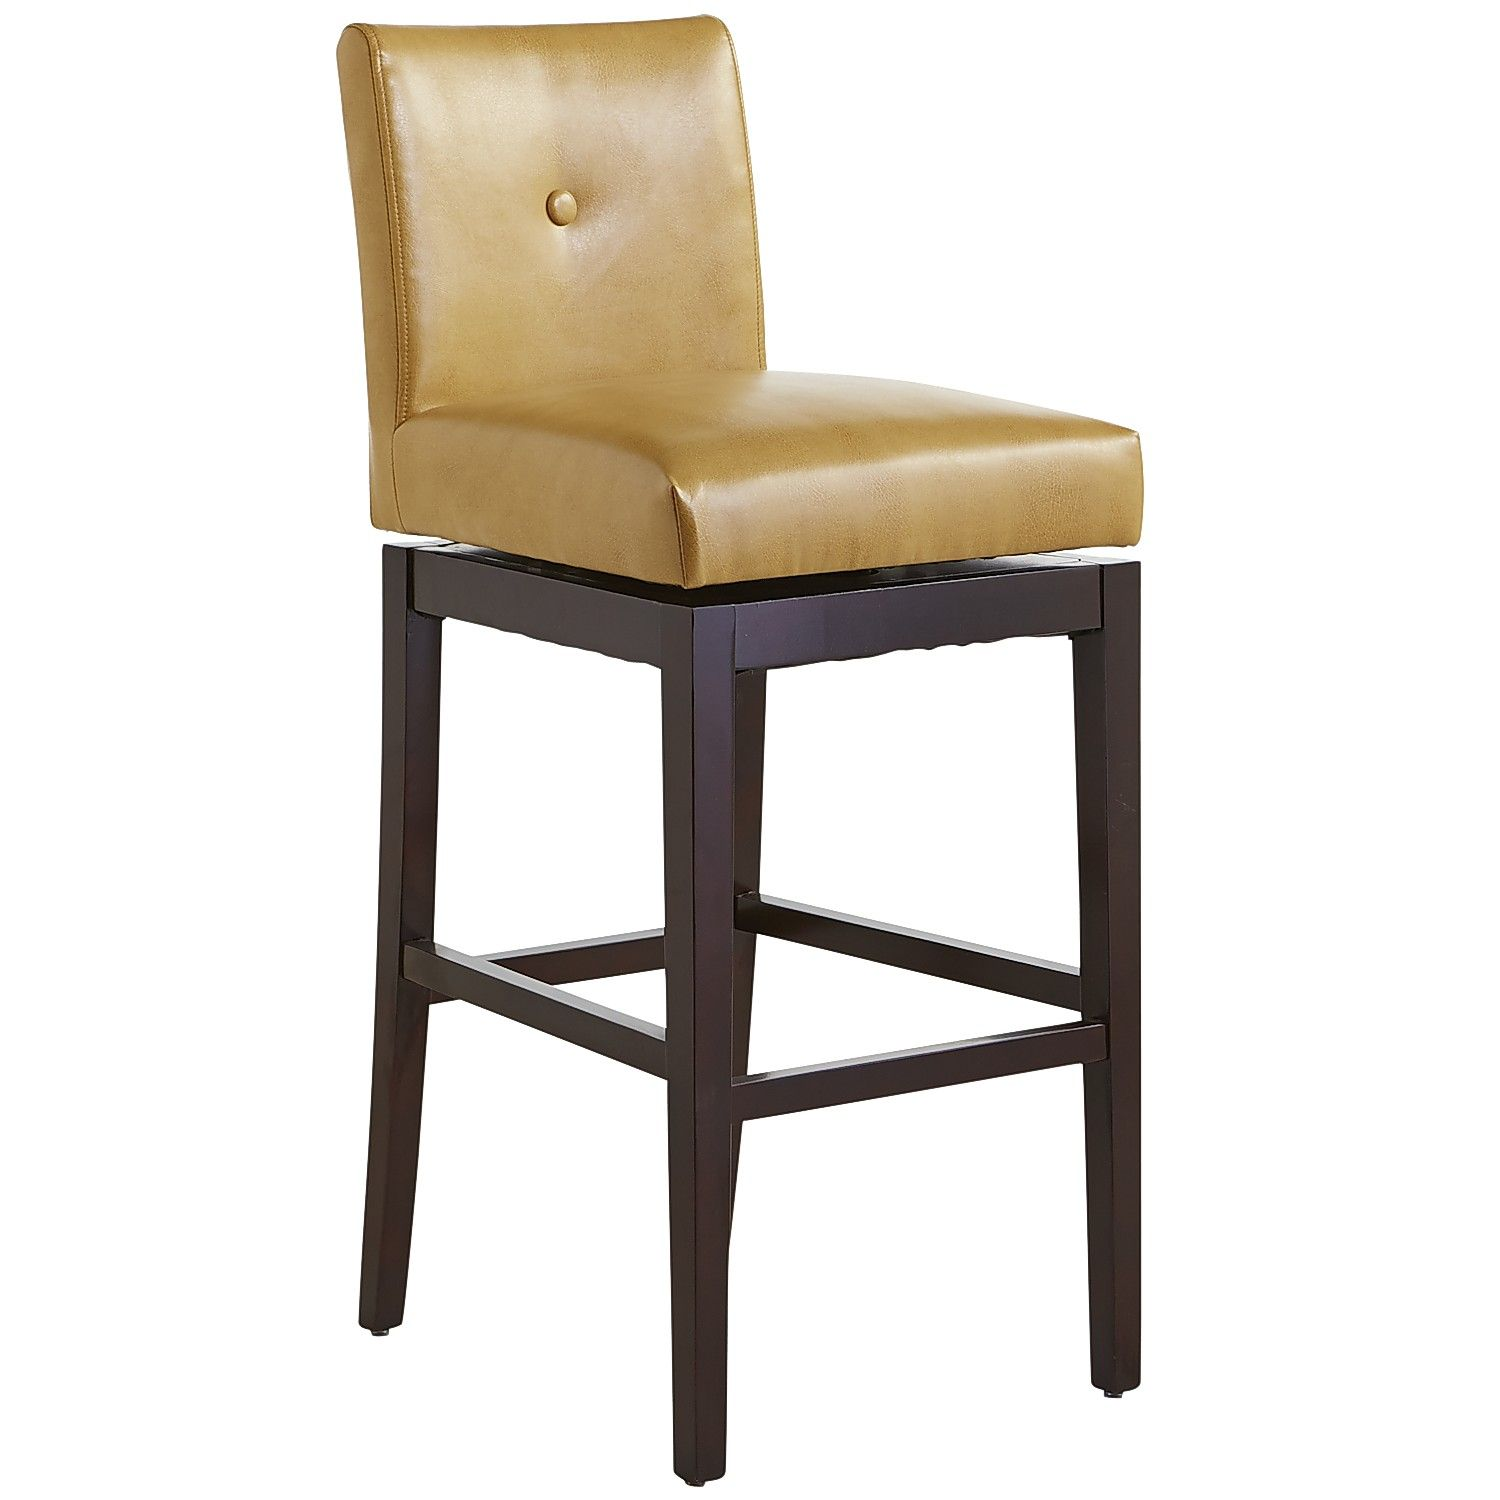 Mattie Low Back Swivel Bar Stool Sand Chairs Gt Table